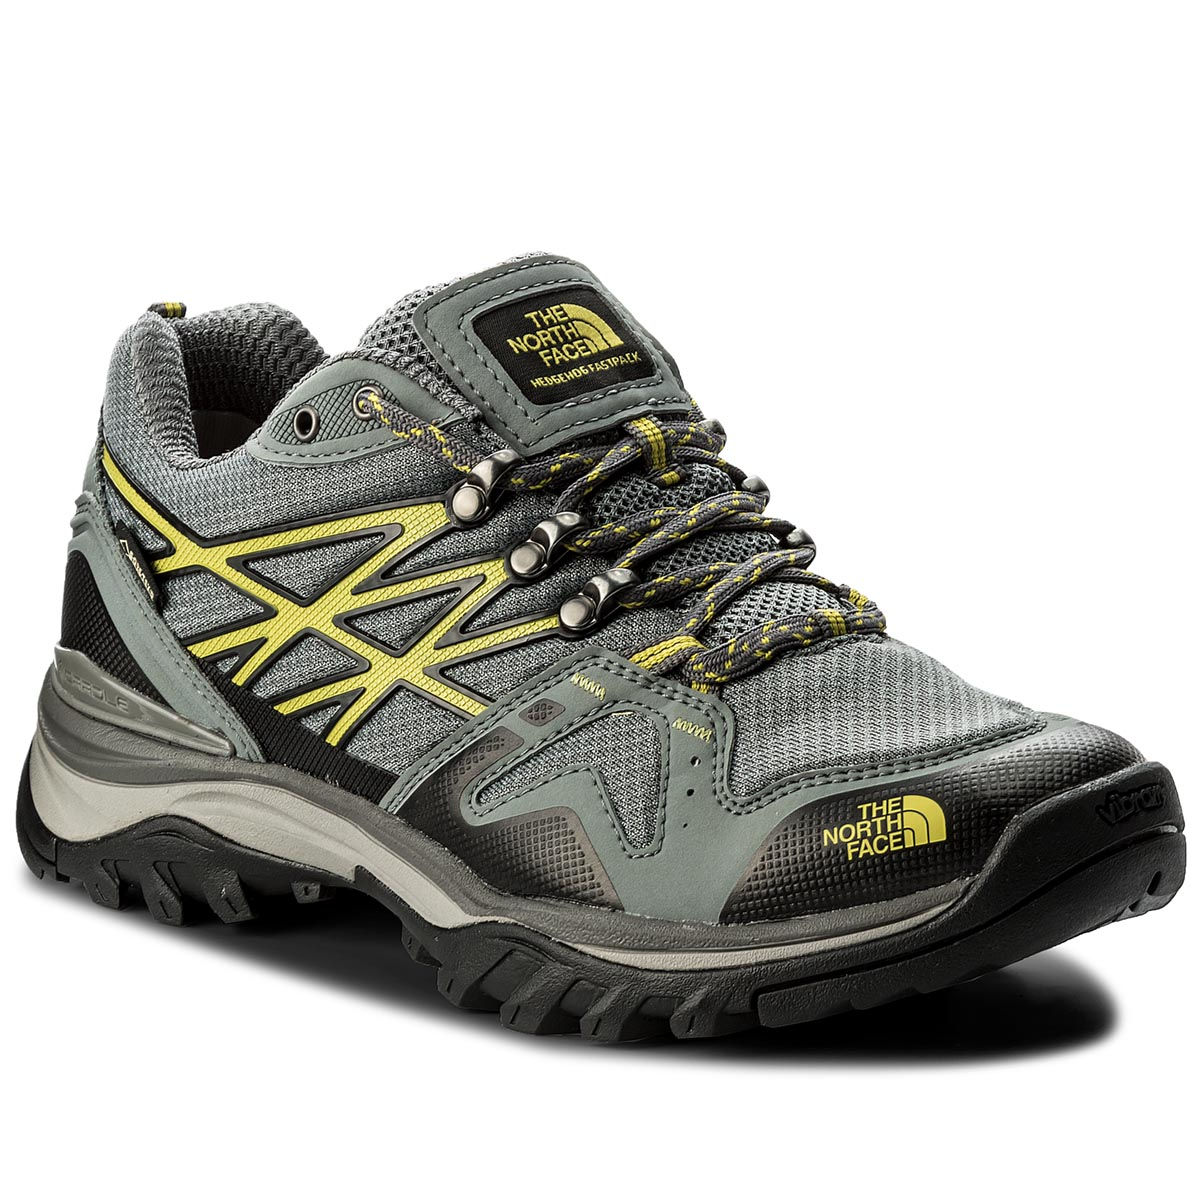 Trekkings THE NORTH FACE - Hedgehog Fastpack Gtx (EU) GORE-TEX T0CXT3ATH Sedona Sage Grey/Citronelle Green